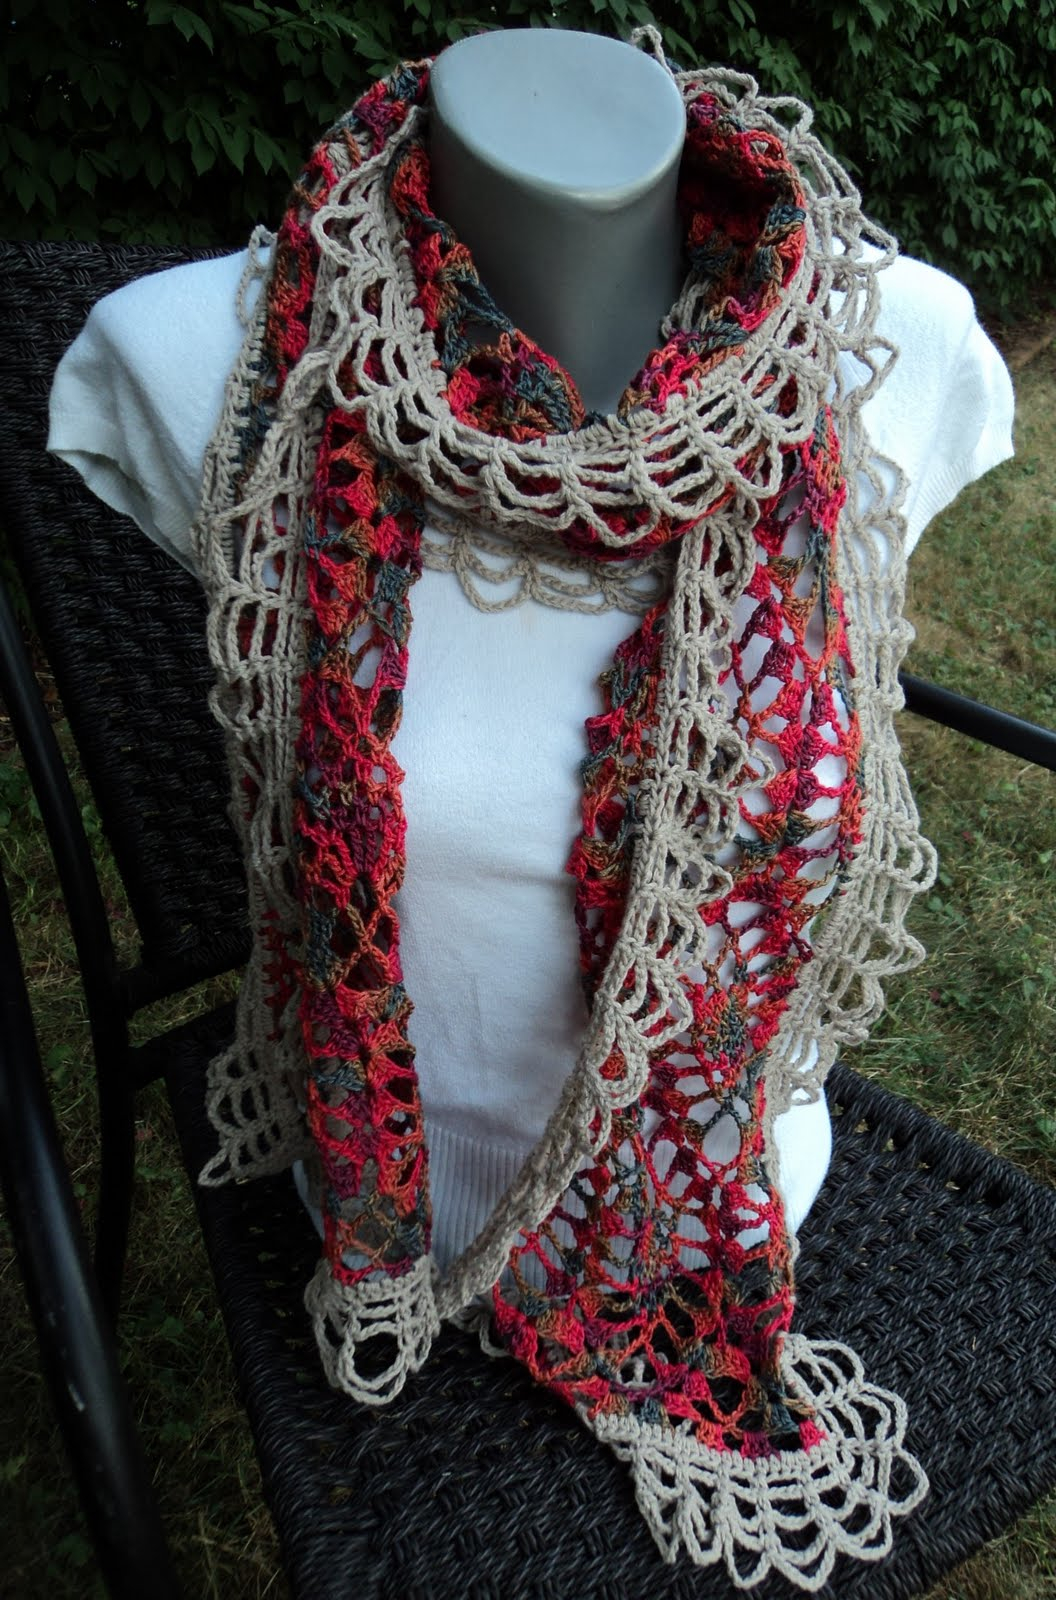 How To Knit A Ruffle Scarf Free Pattern Free Crochet Pattern Ruffle Scarf Crochet Patterns Tutorials And